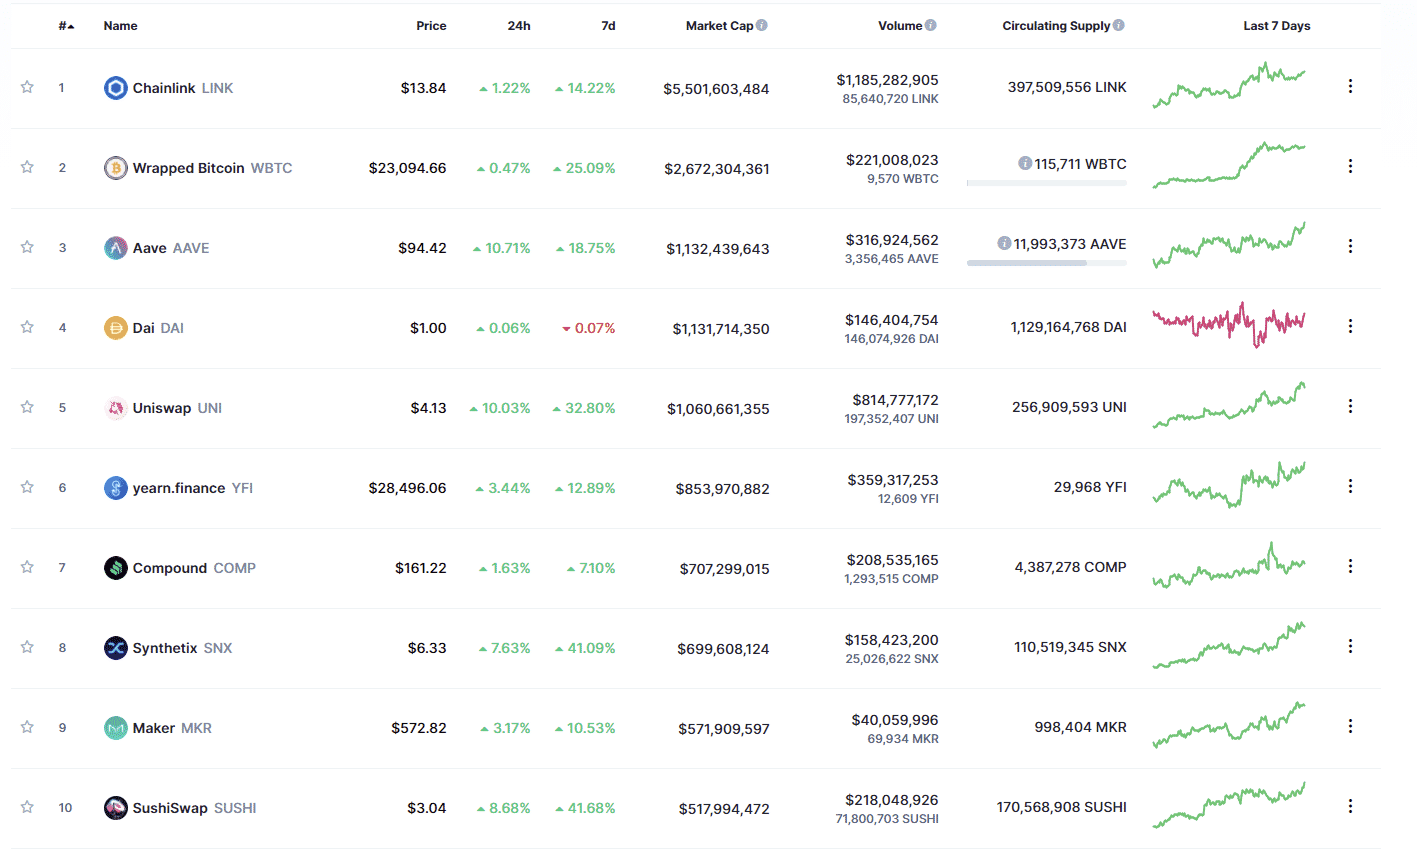 Top DeFi Tokens Listed by Market Capitalization CoinMarketCap